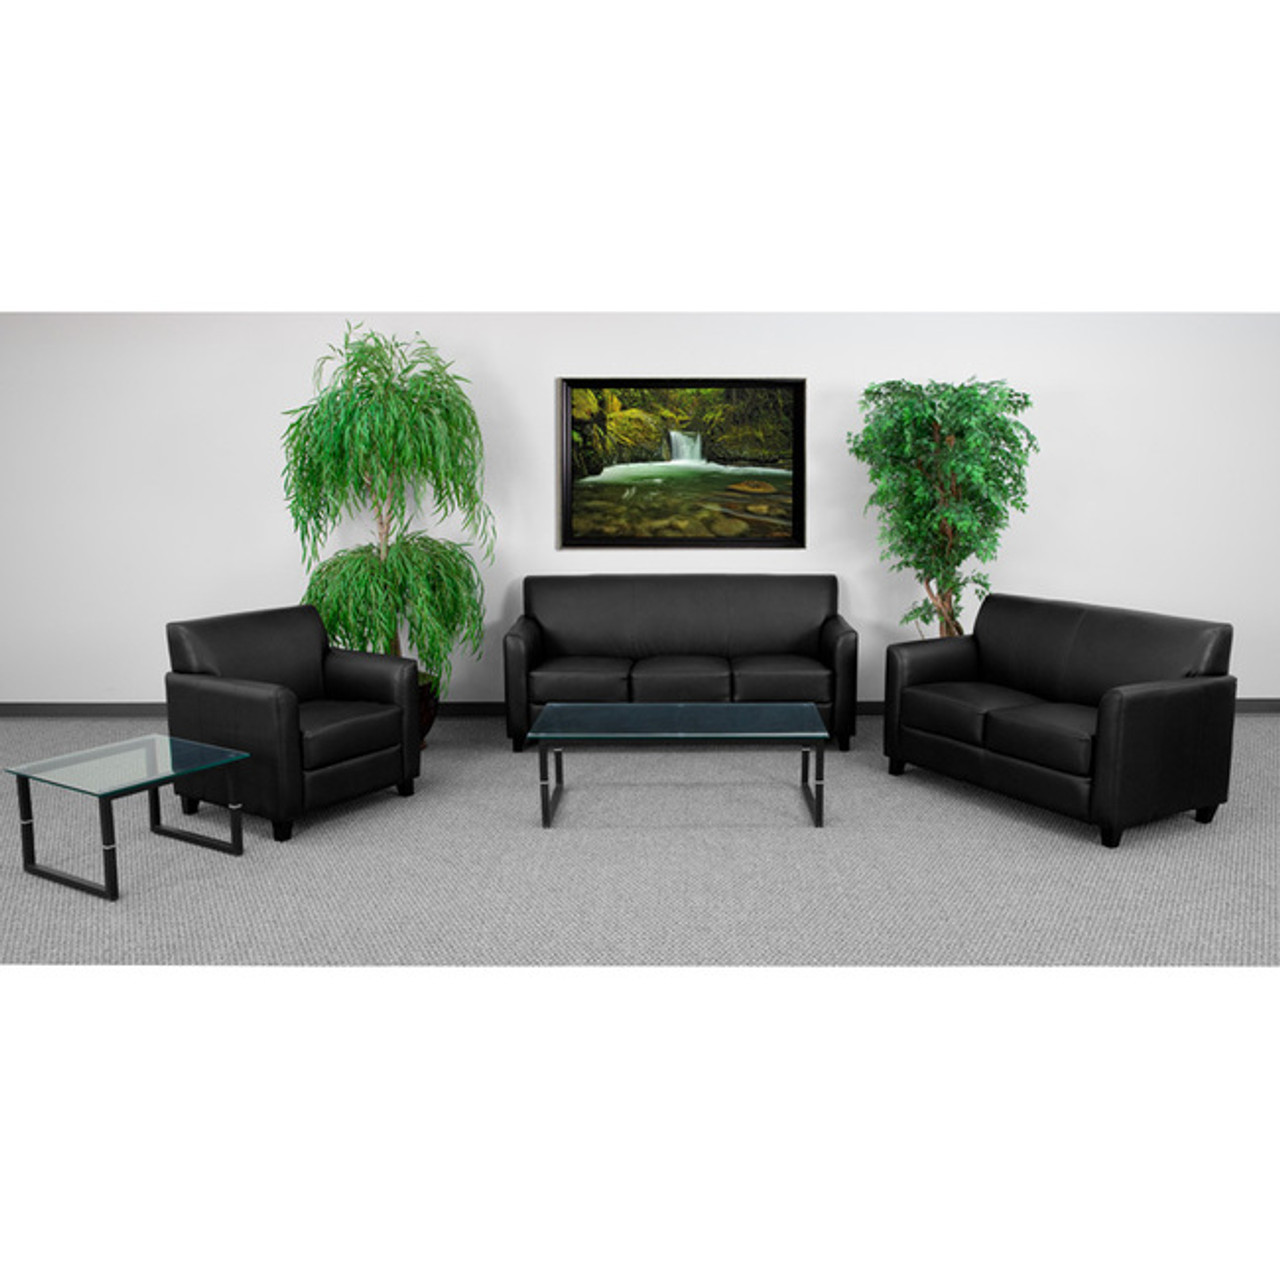 3pc Modern Leather Office Reception Sofa Set, FF-0551-13-S1